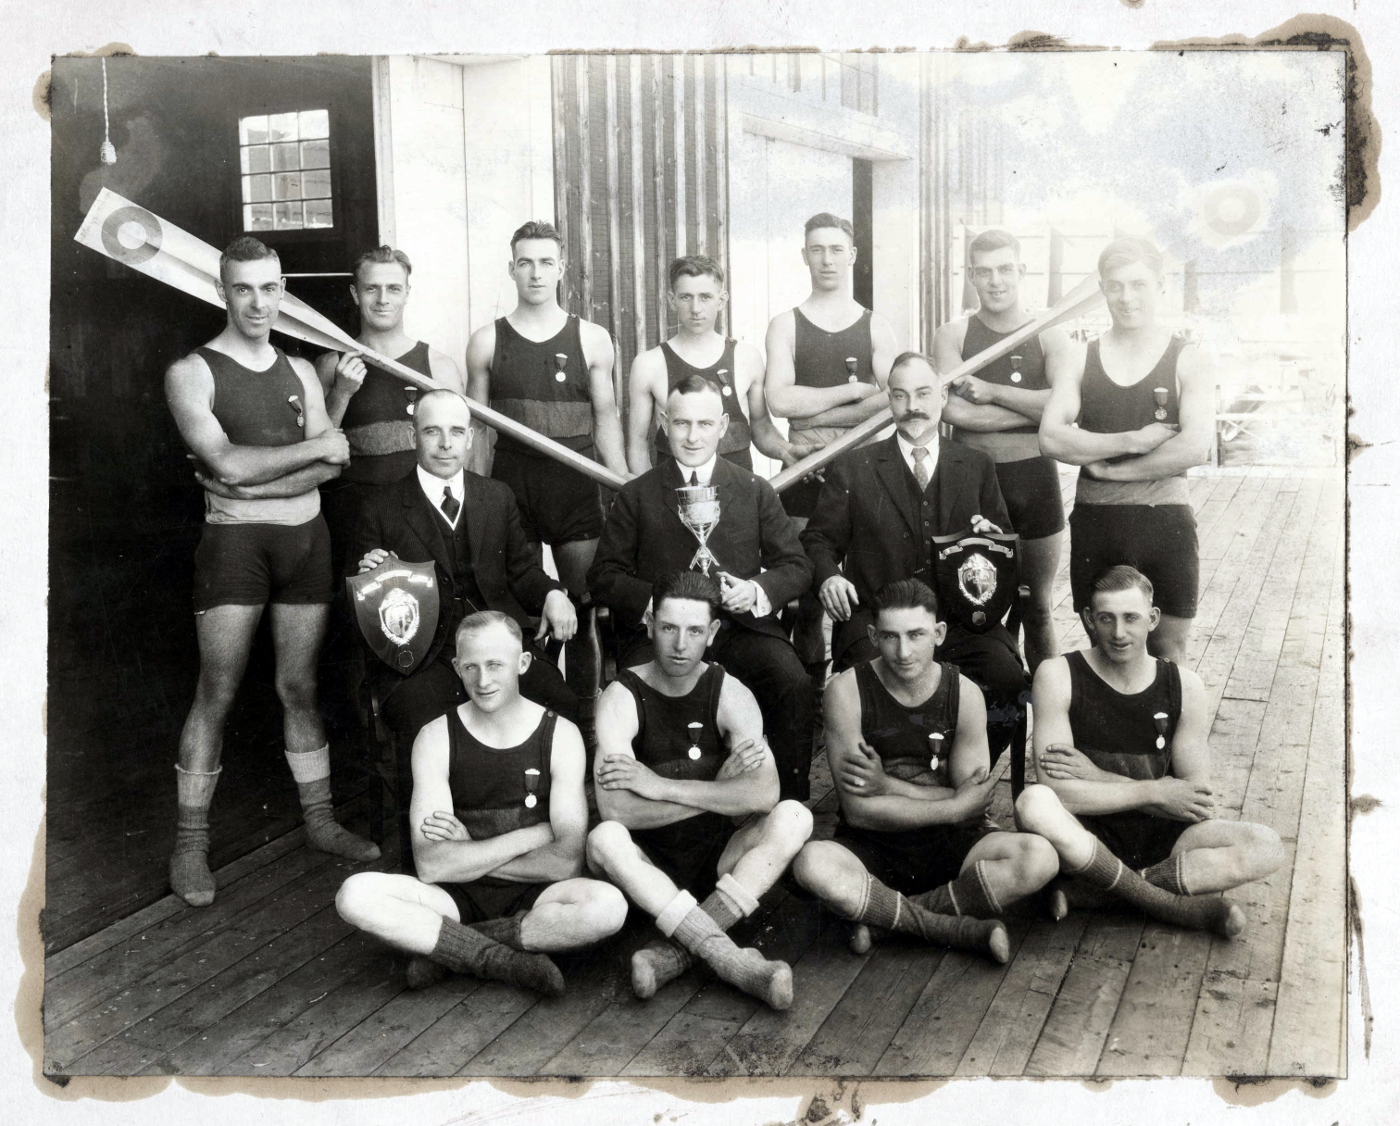 Before the Halifax Explosion obliterated the 'Lorne Club' at the bottom of North St, its rowing crew ownedHarbour waves like a boss circa1890s